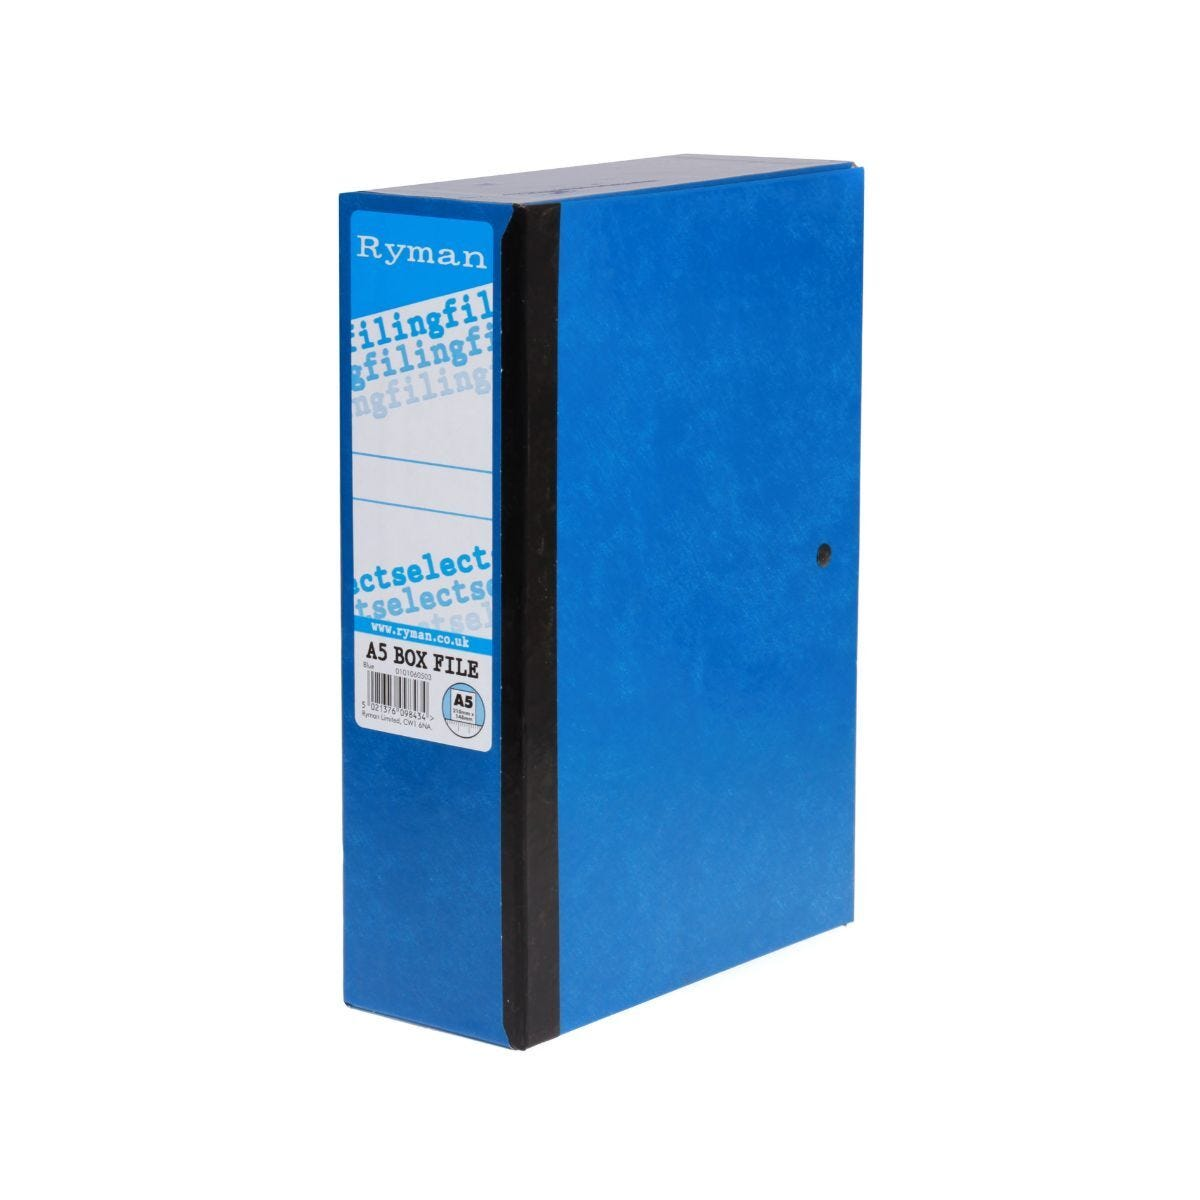 Ryman Selecta Box File A5 Blue